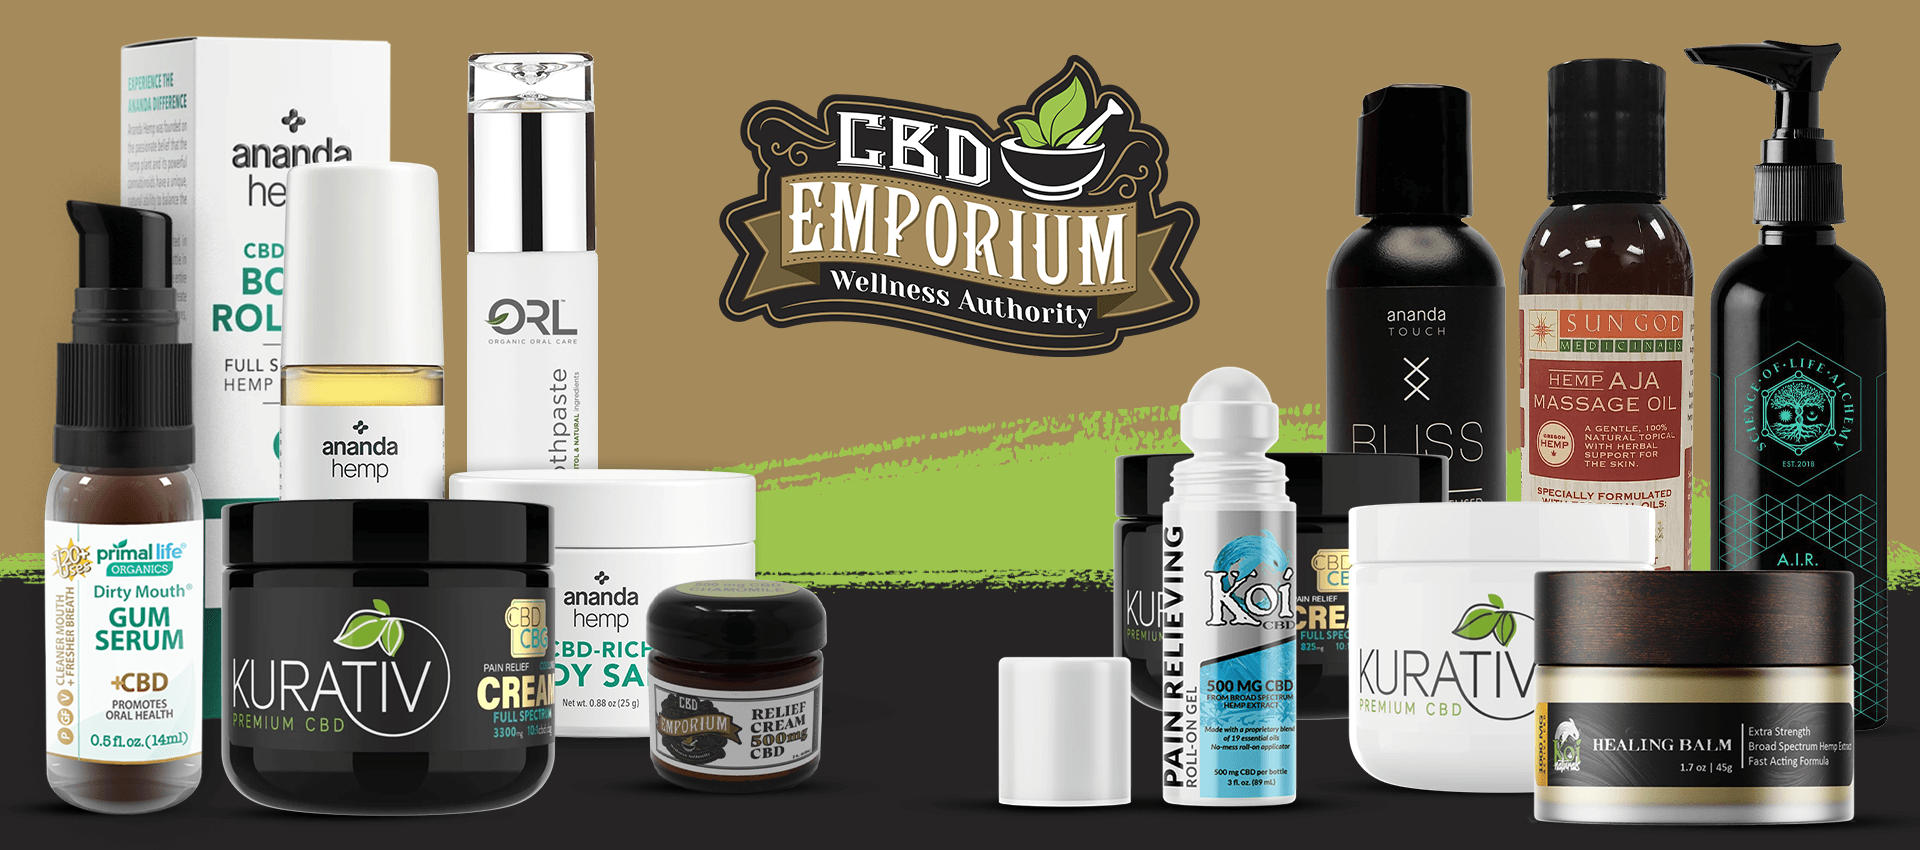 CBD Bath and Body: CBD Lotions, Salves, Creams, Patches and CBD bath products from CBD Emporium